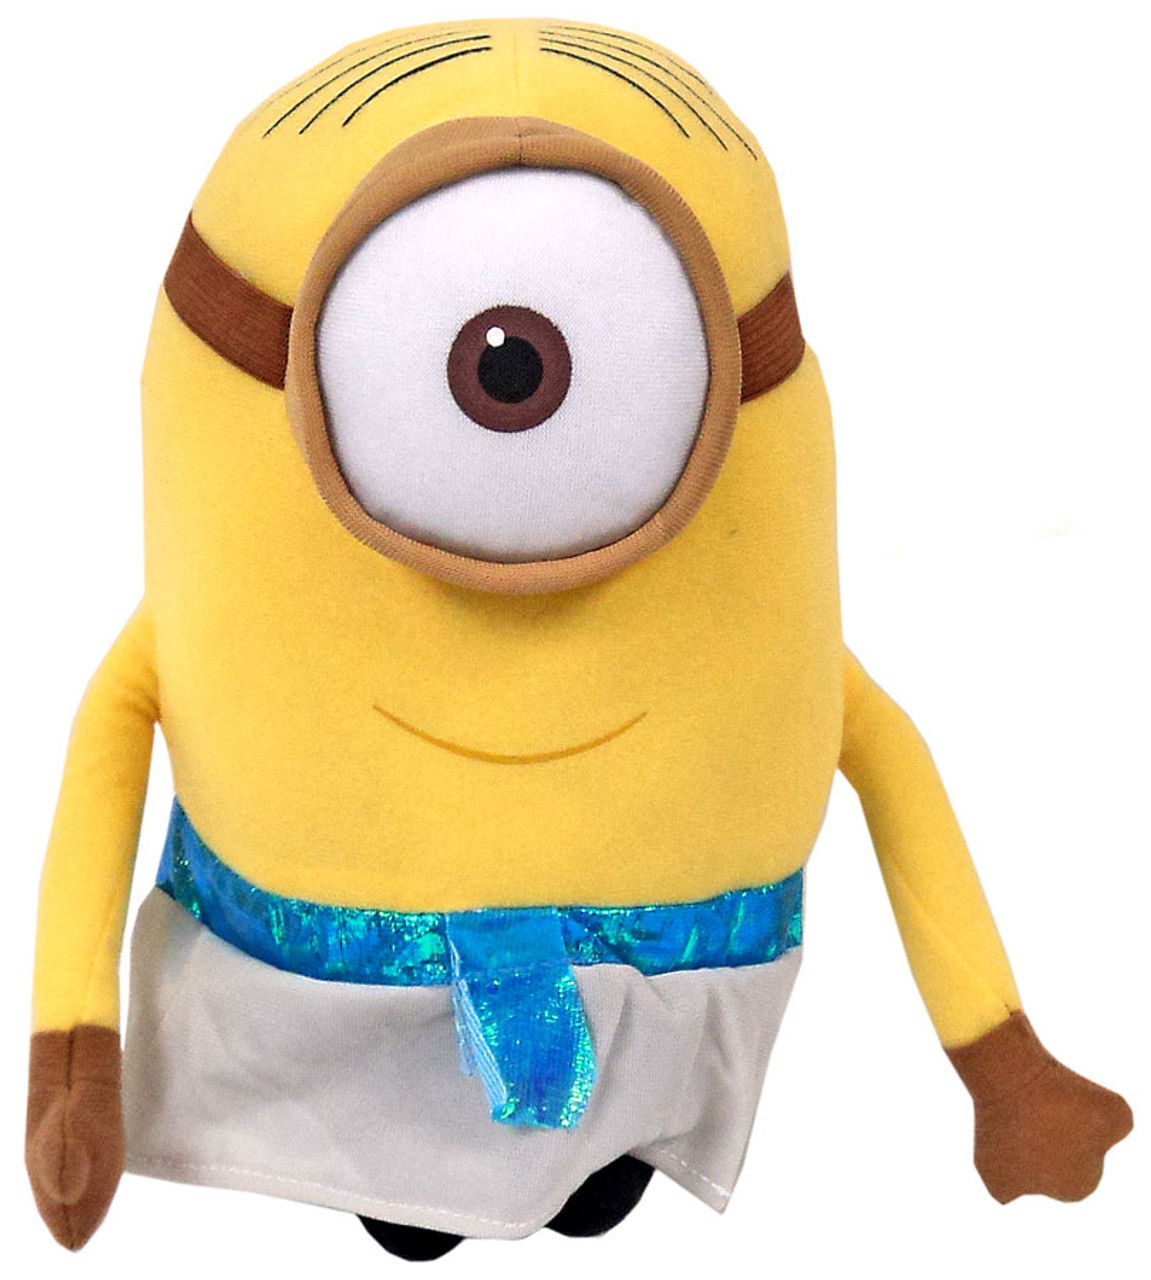 Despicable Me Minions Movie Egyptian Minion 9 Plush Figure Toy Factory - ToyWiz